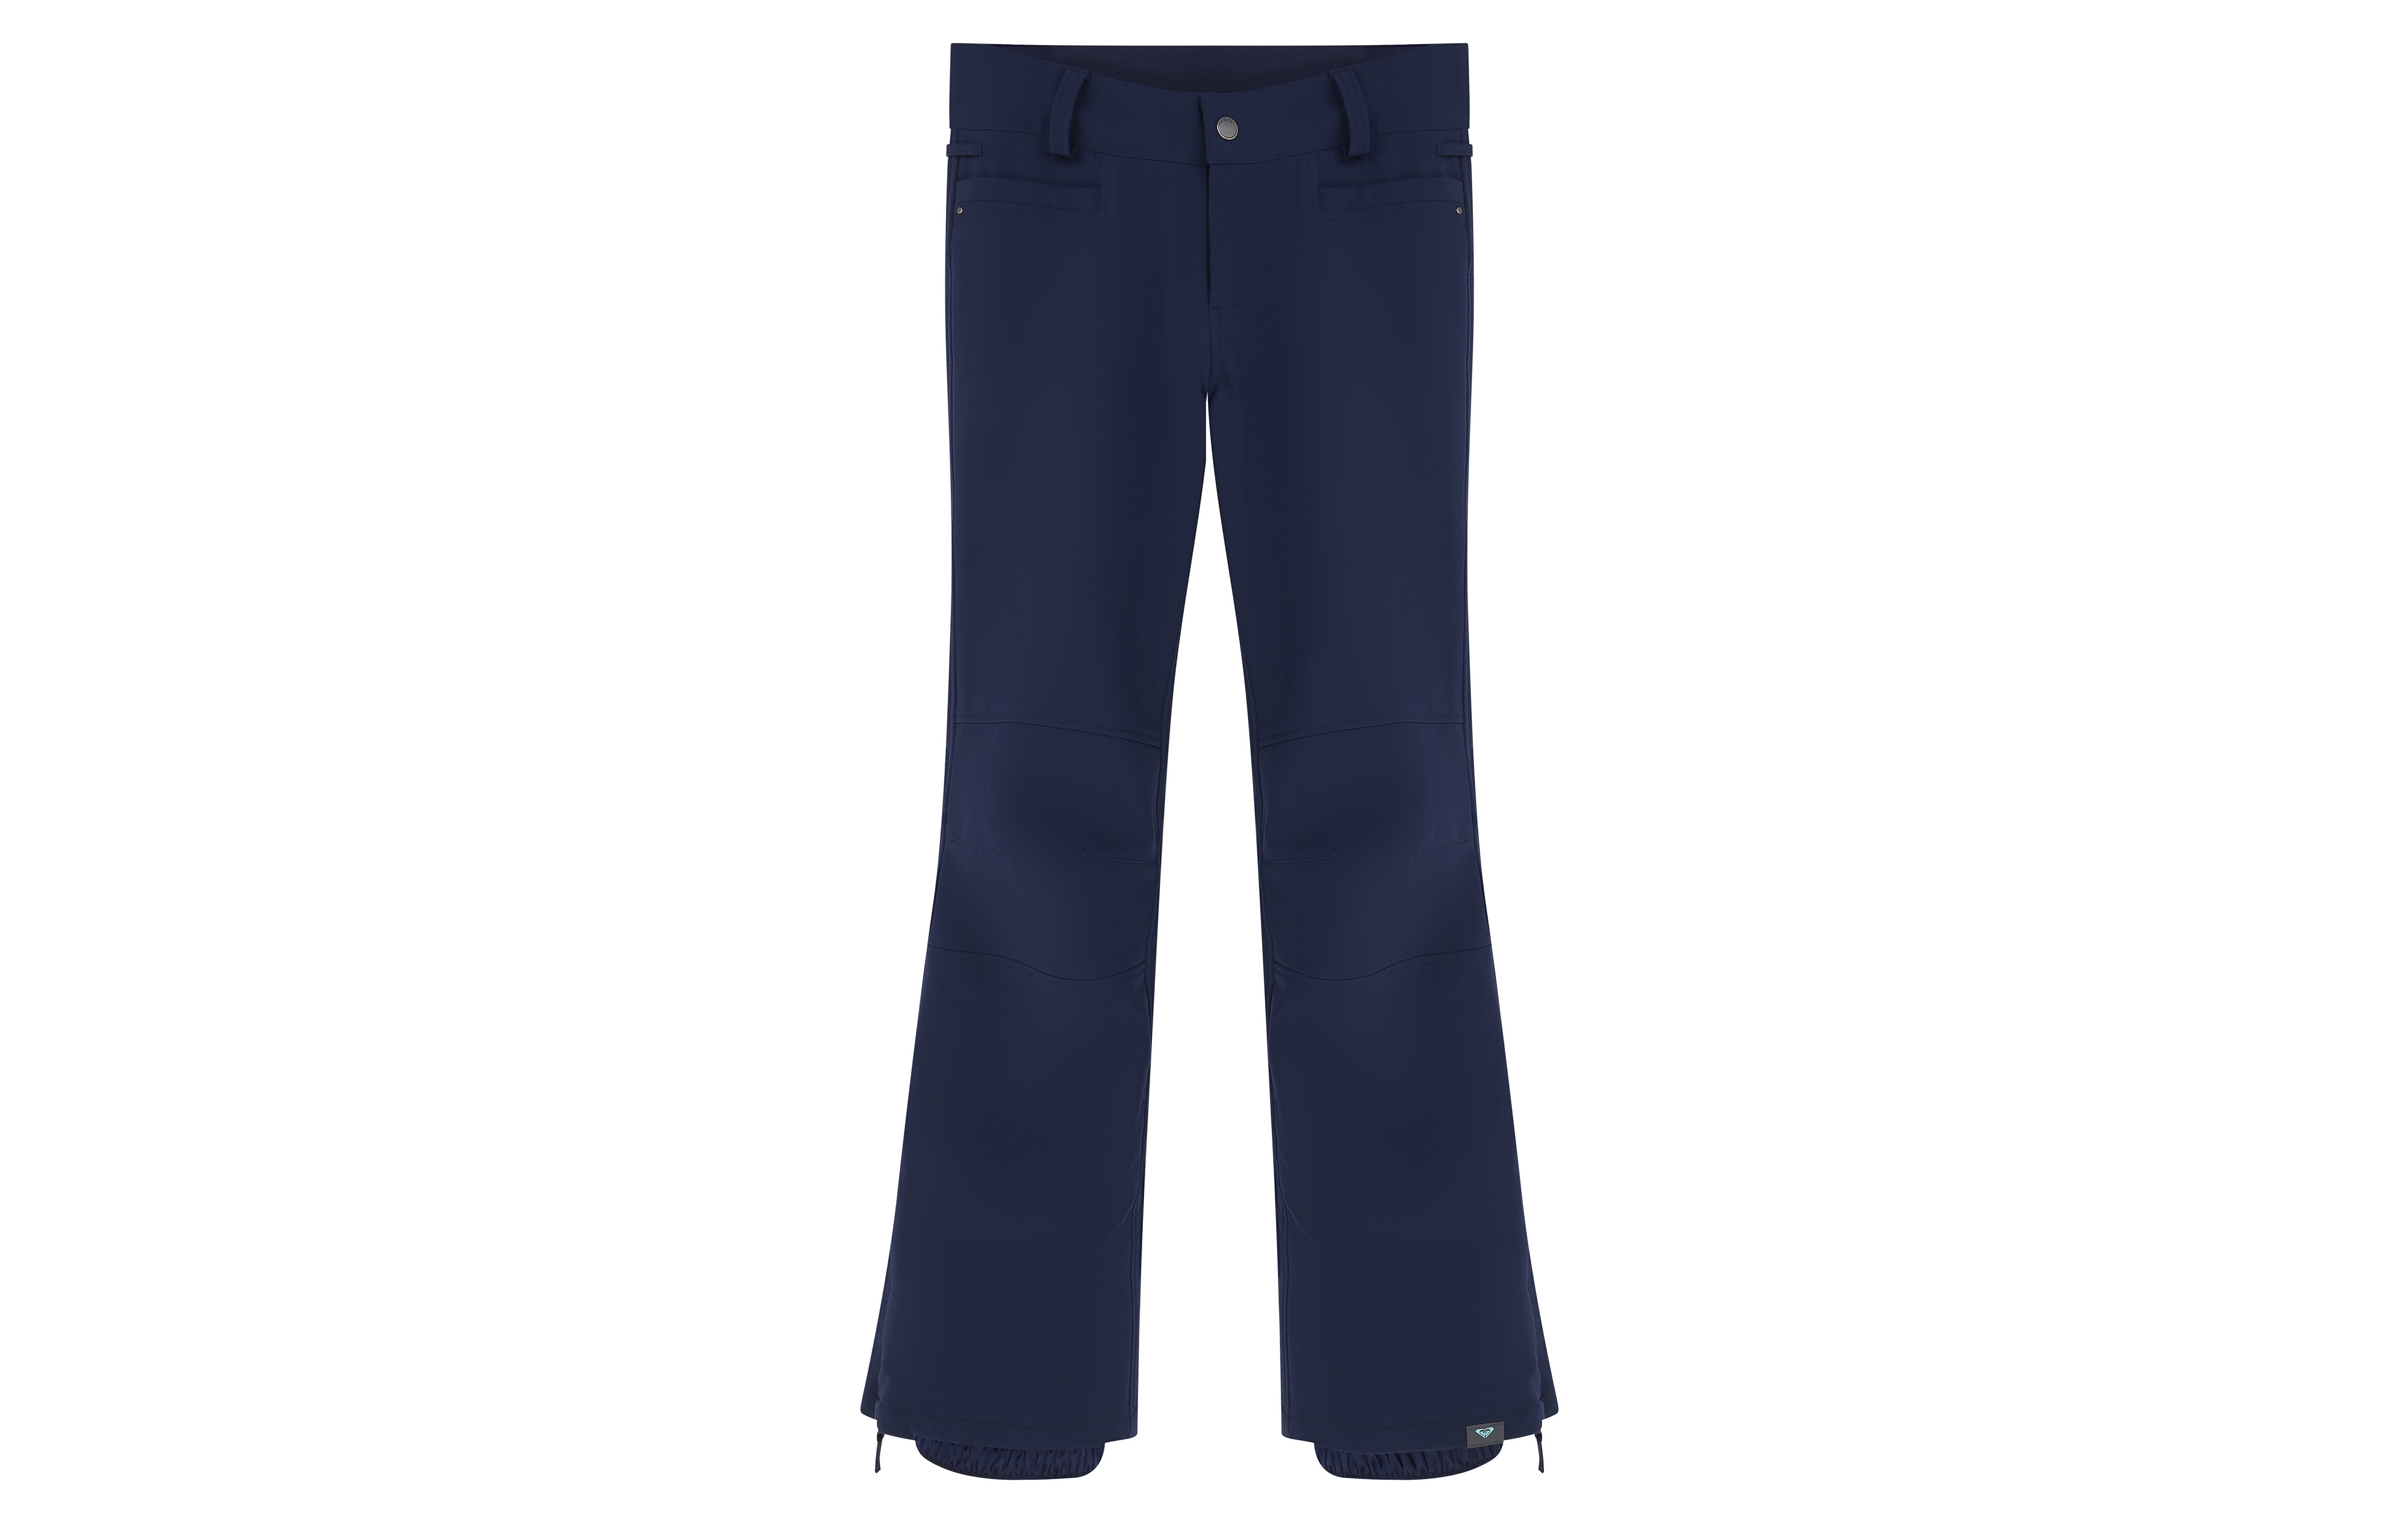 Roxy Women's Creek Pants in Blue